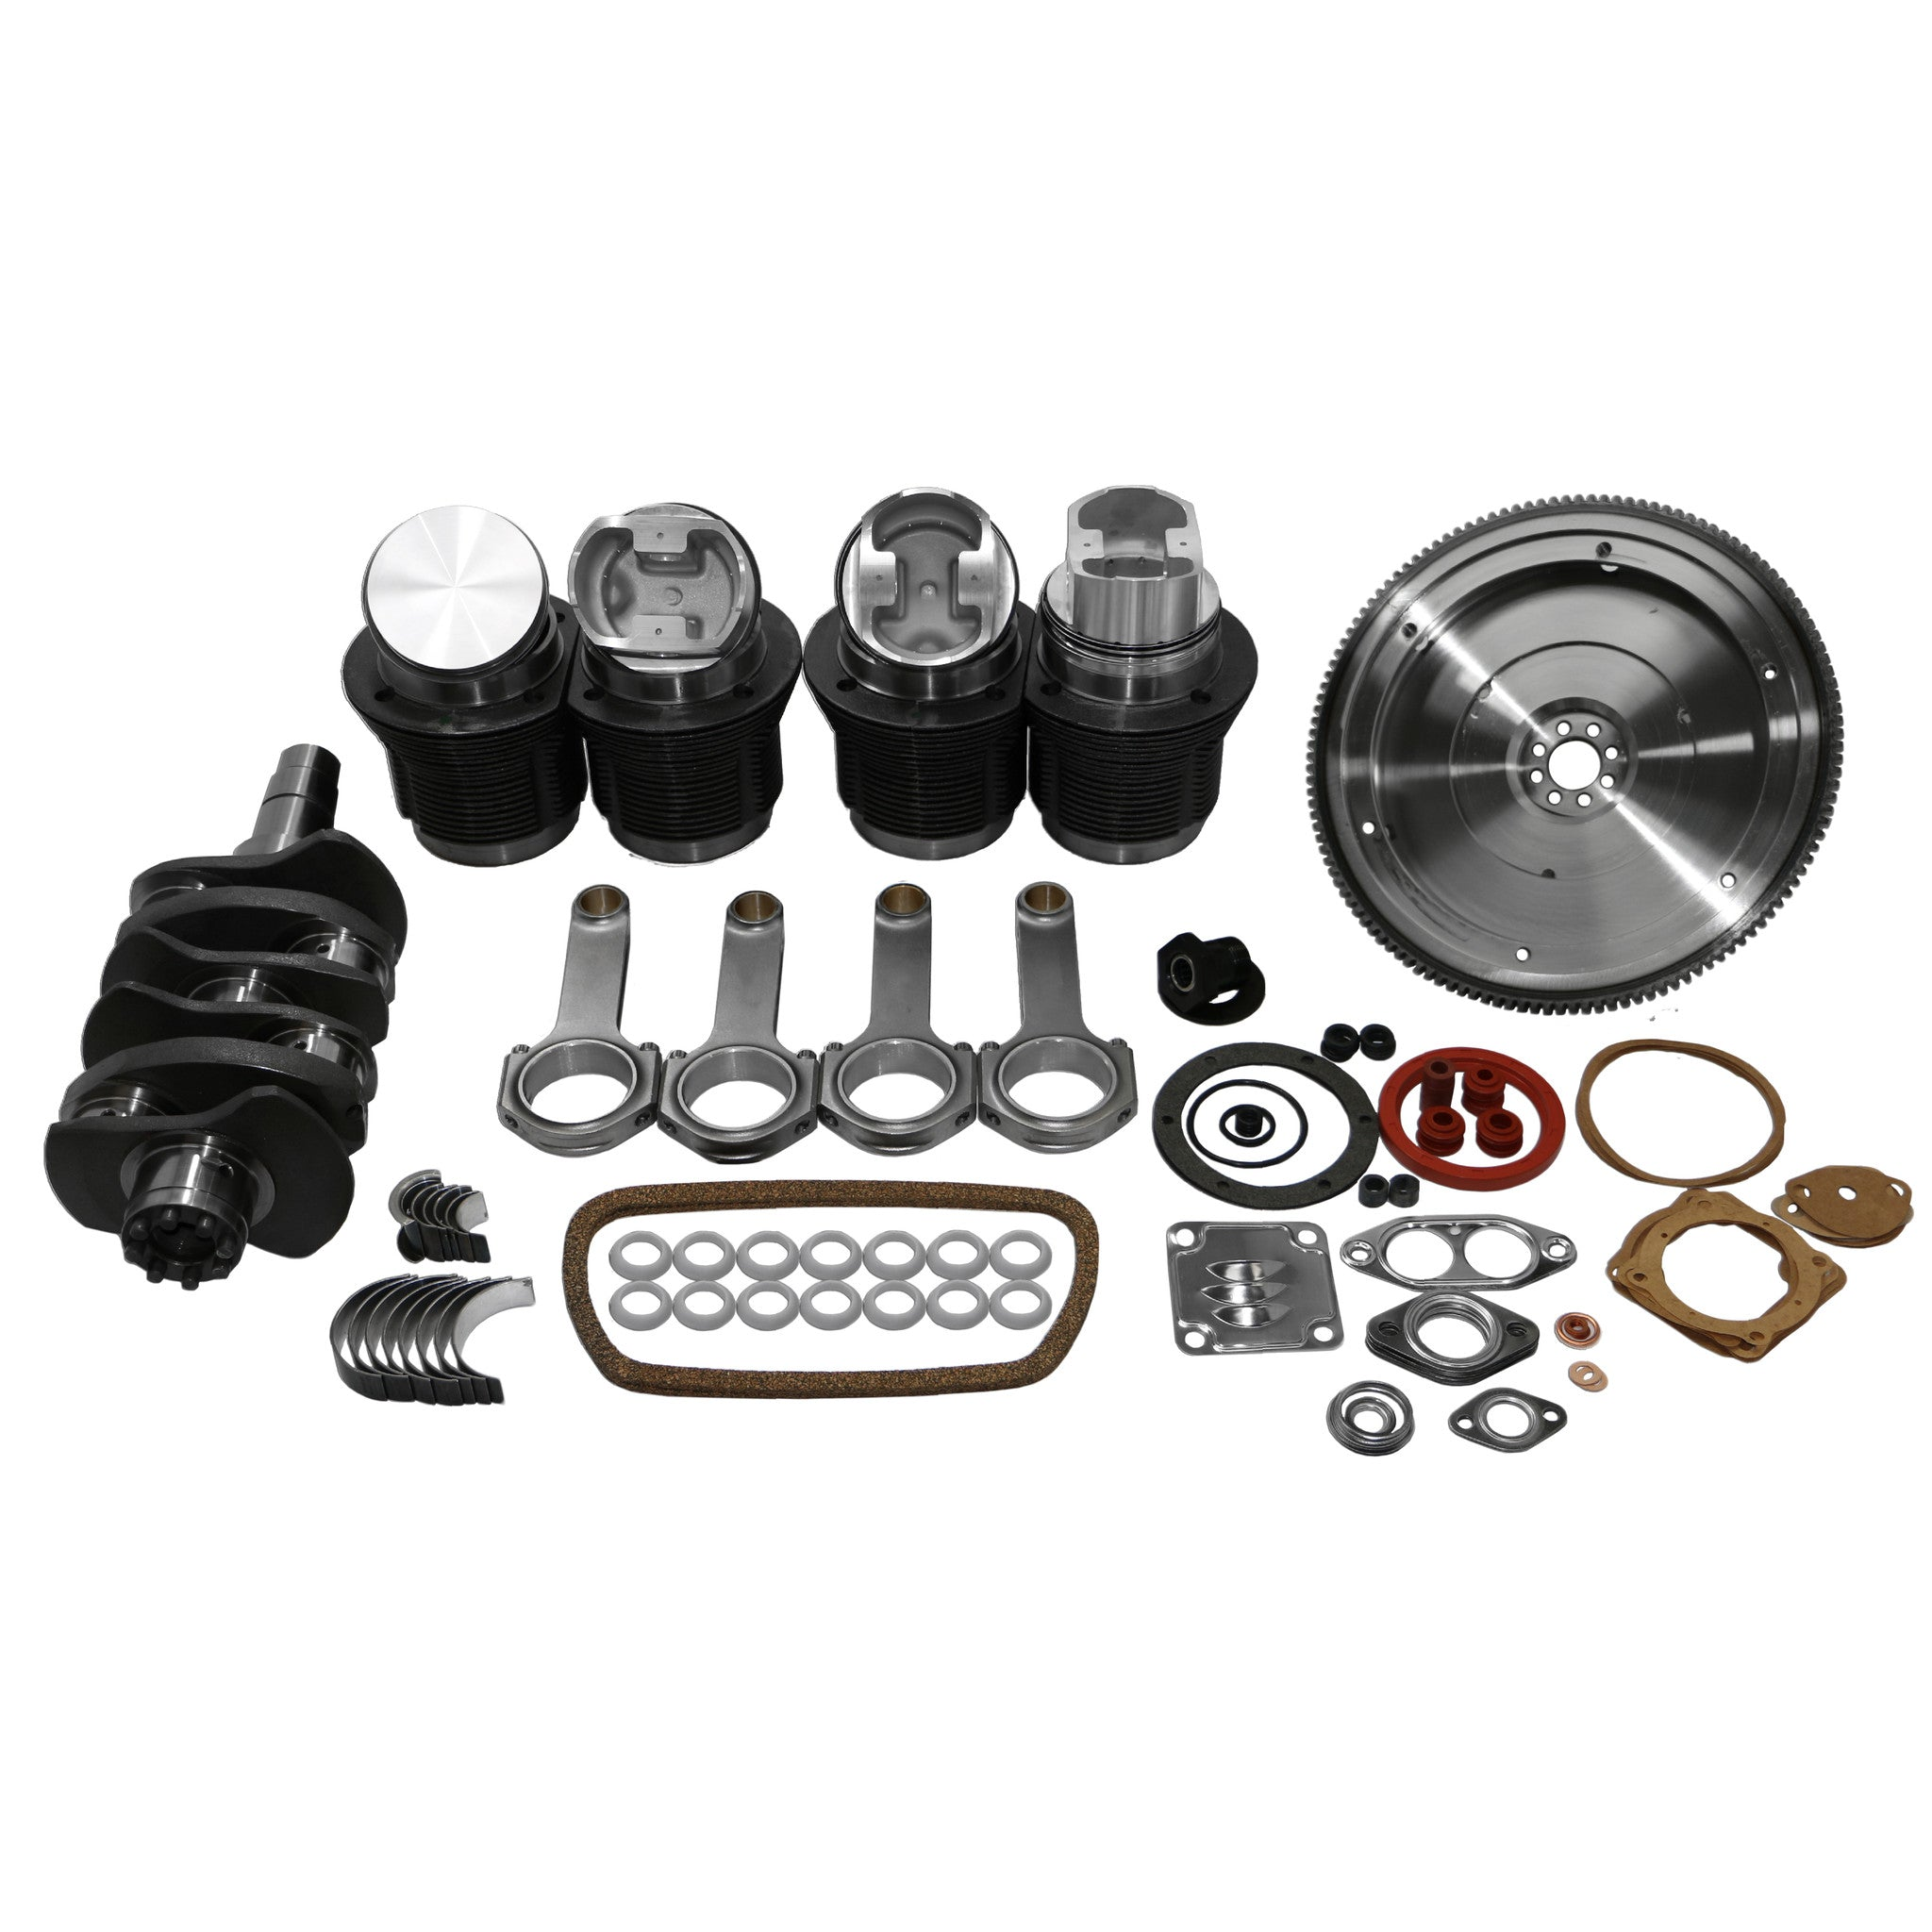 VW Type 1 High Performance PLUS Rebuild Engine Kit | AA